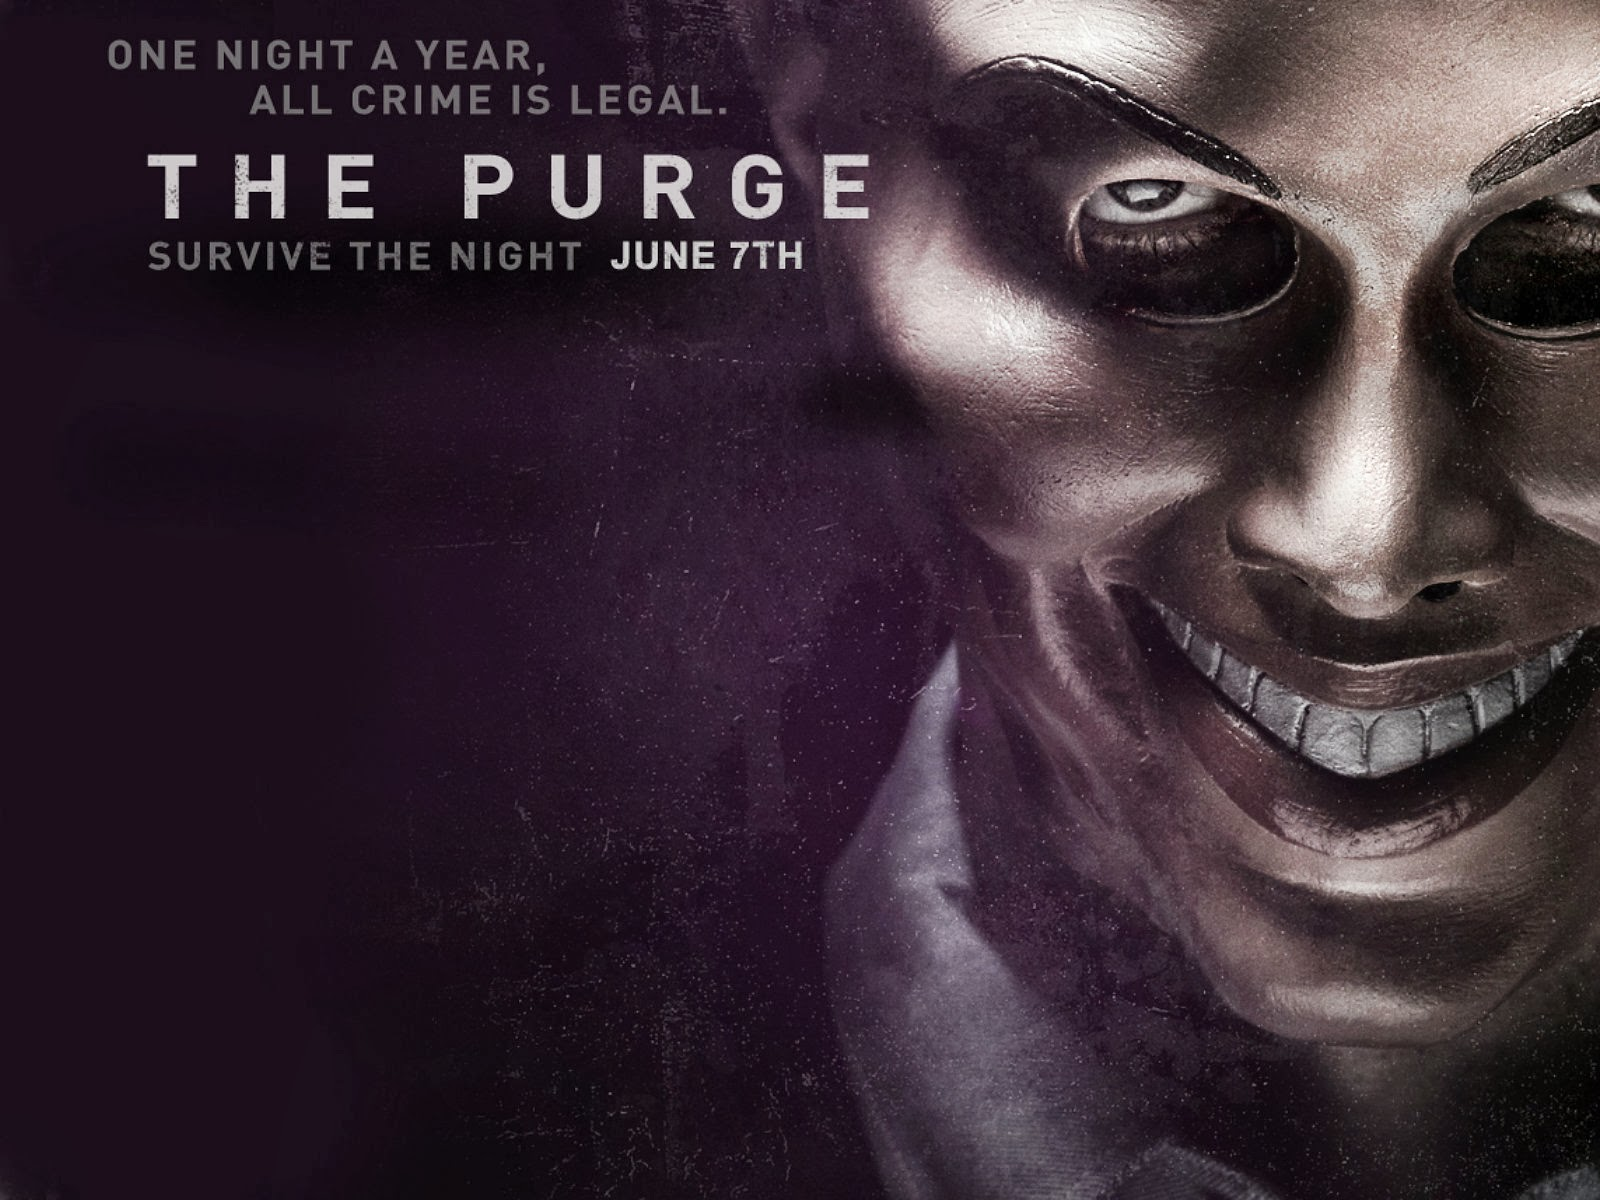 Killzone Shadow Fall Wallpapers Hd Wallpapers Hd Wallpapers Movie The Purge 12 Fondos